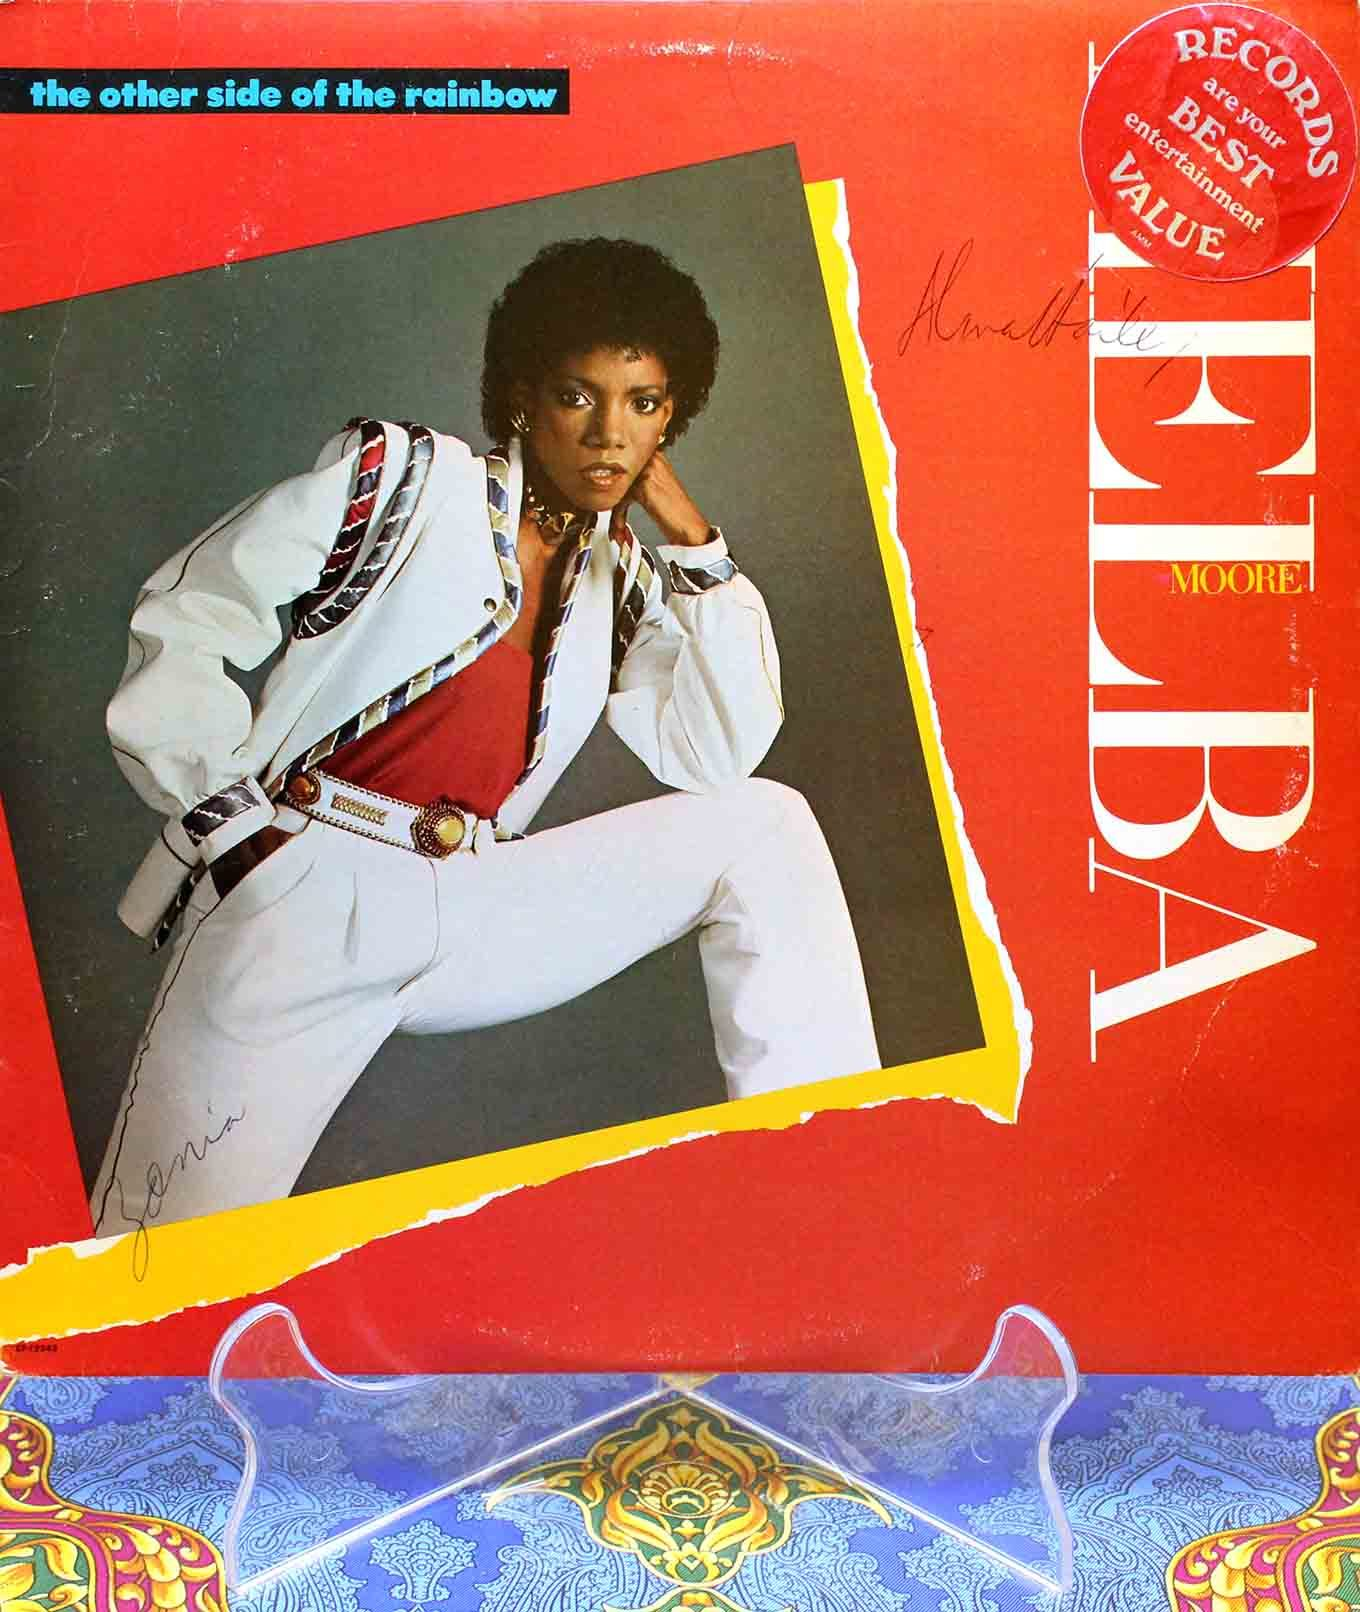 Melba Moore - The Other Side of the Rainbow 01